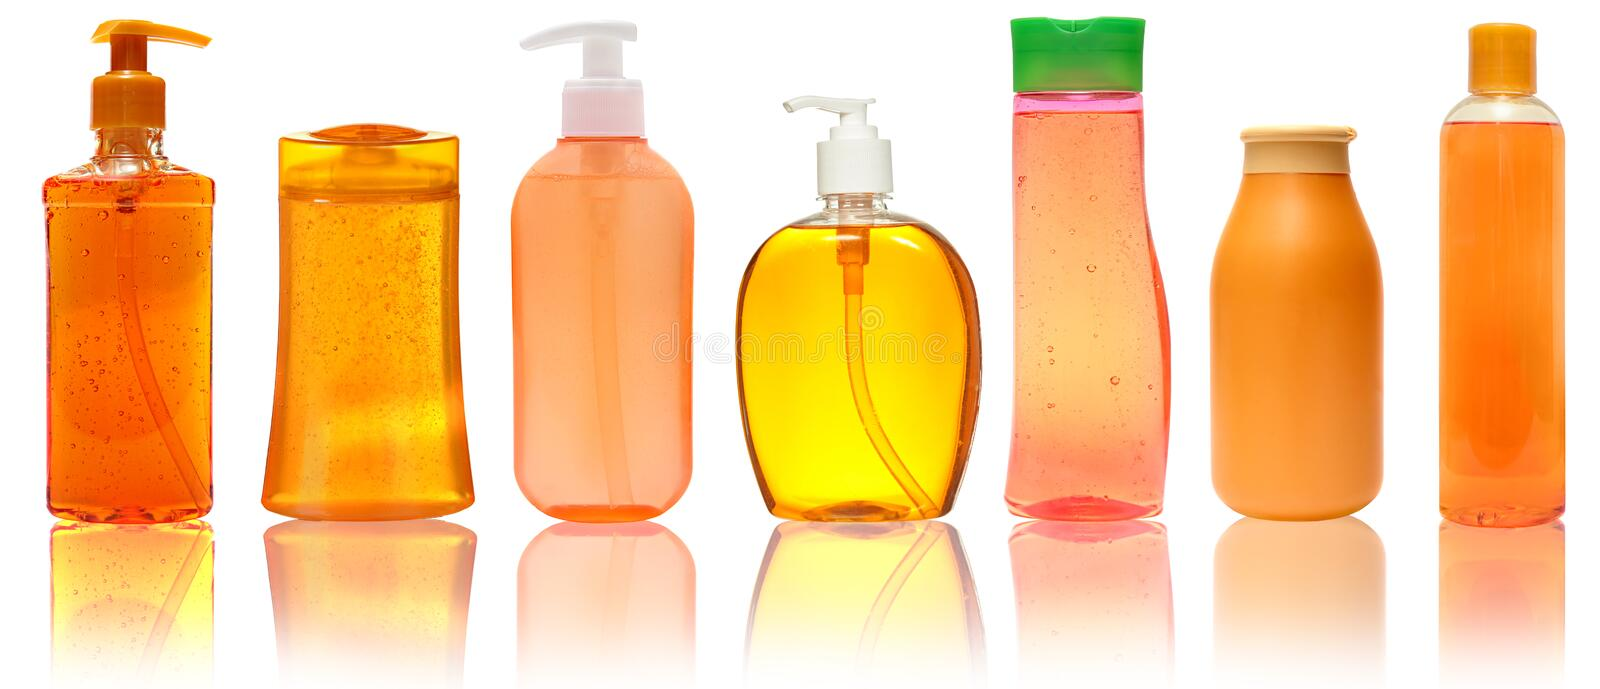 Seven orange Plastic Bottles With Shampoo, Liquid Soap, Shower Gel. Isolated on white background with reflection. royalty free stock photos